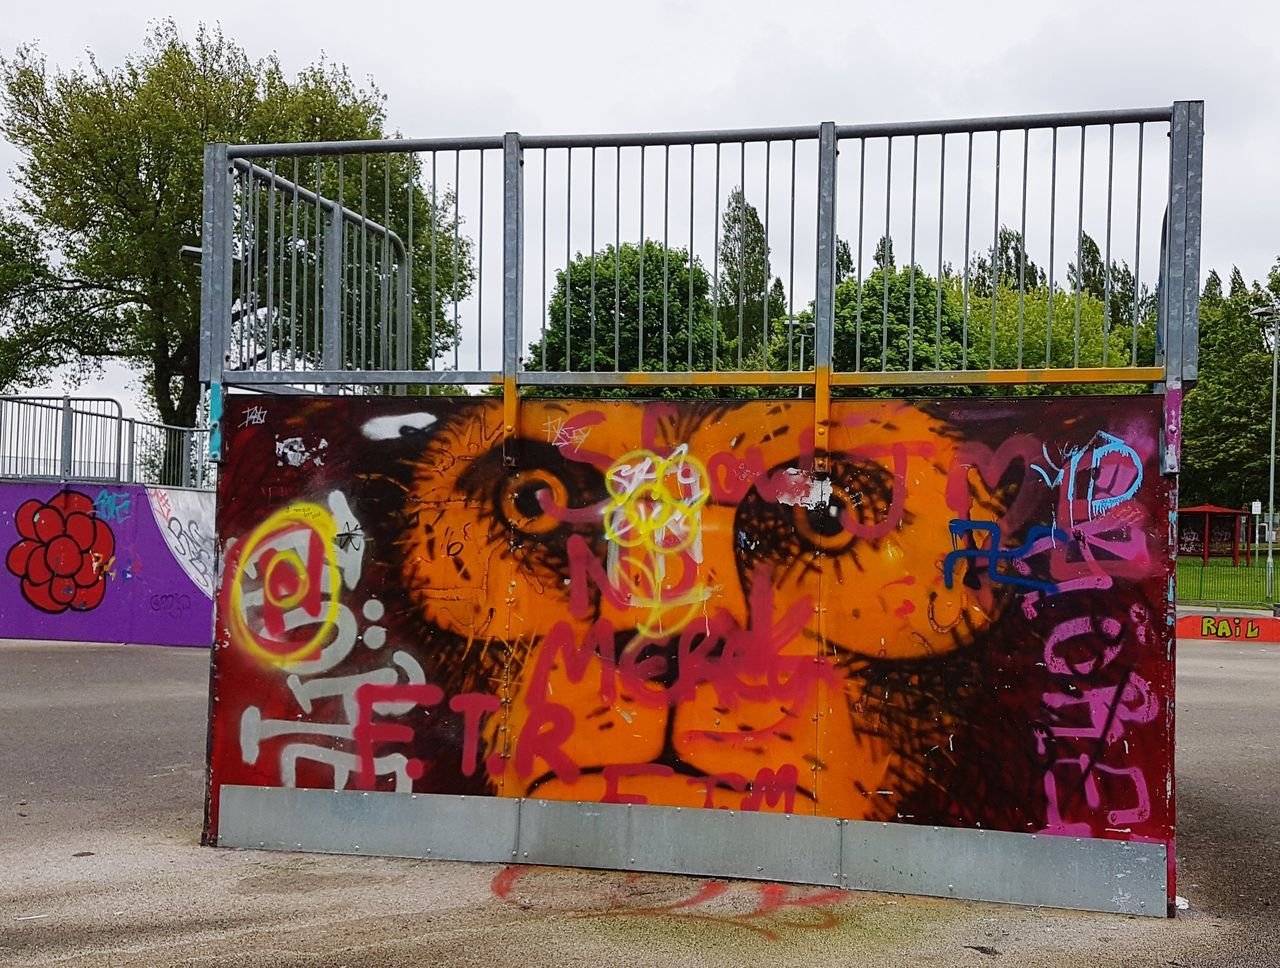 Street Art Art Around Us Graffiti Outdoors Art Is Everywhere Monkey Face Day No People Seeing The Things I See Appreciate The Little Things In Life Nature And Art Down At The Park Vandalism?